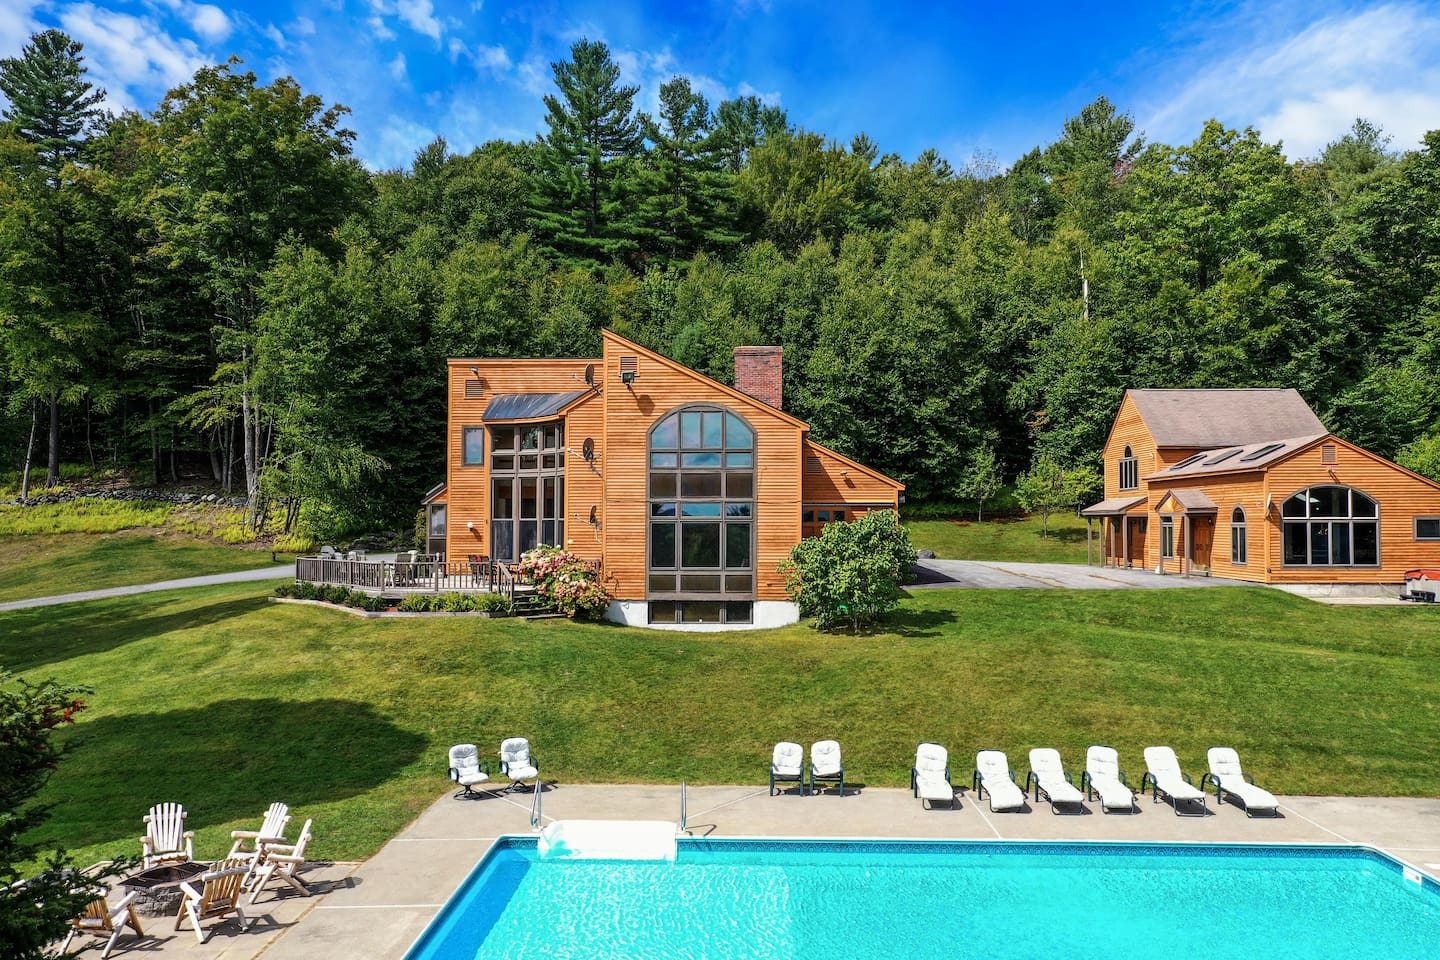 An incredible private estate on 100 acres in Newfane, Vermont. Seven bedrooms, a private pool, hot tub, game room, tennis court, and more!